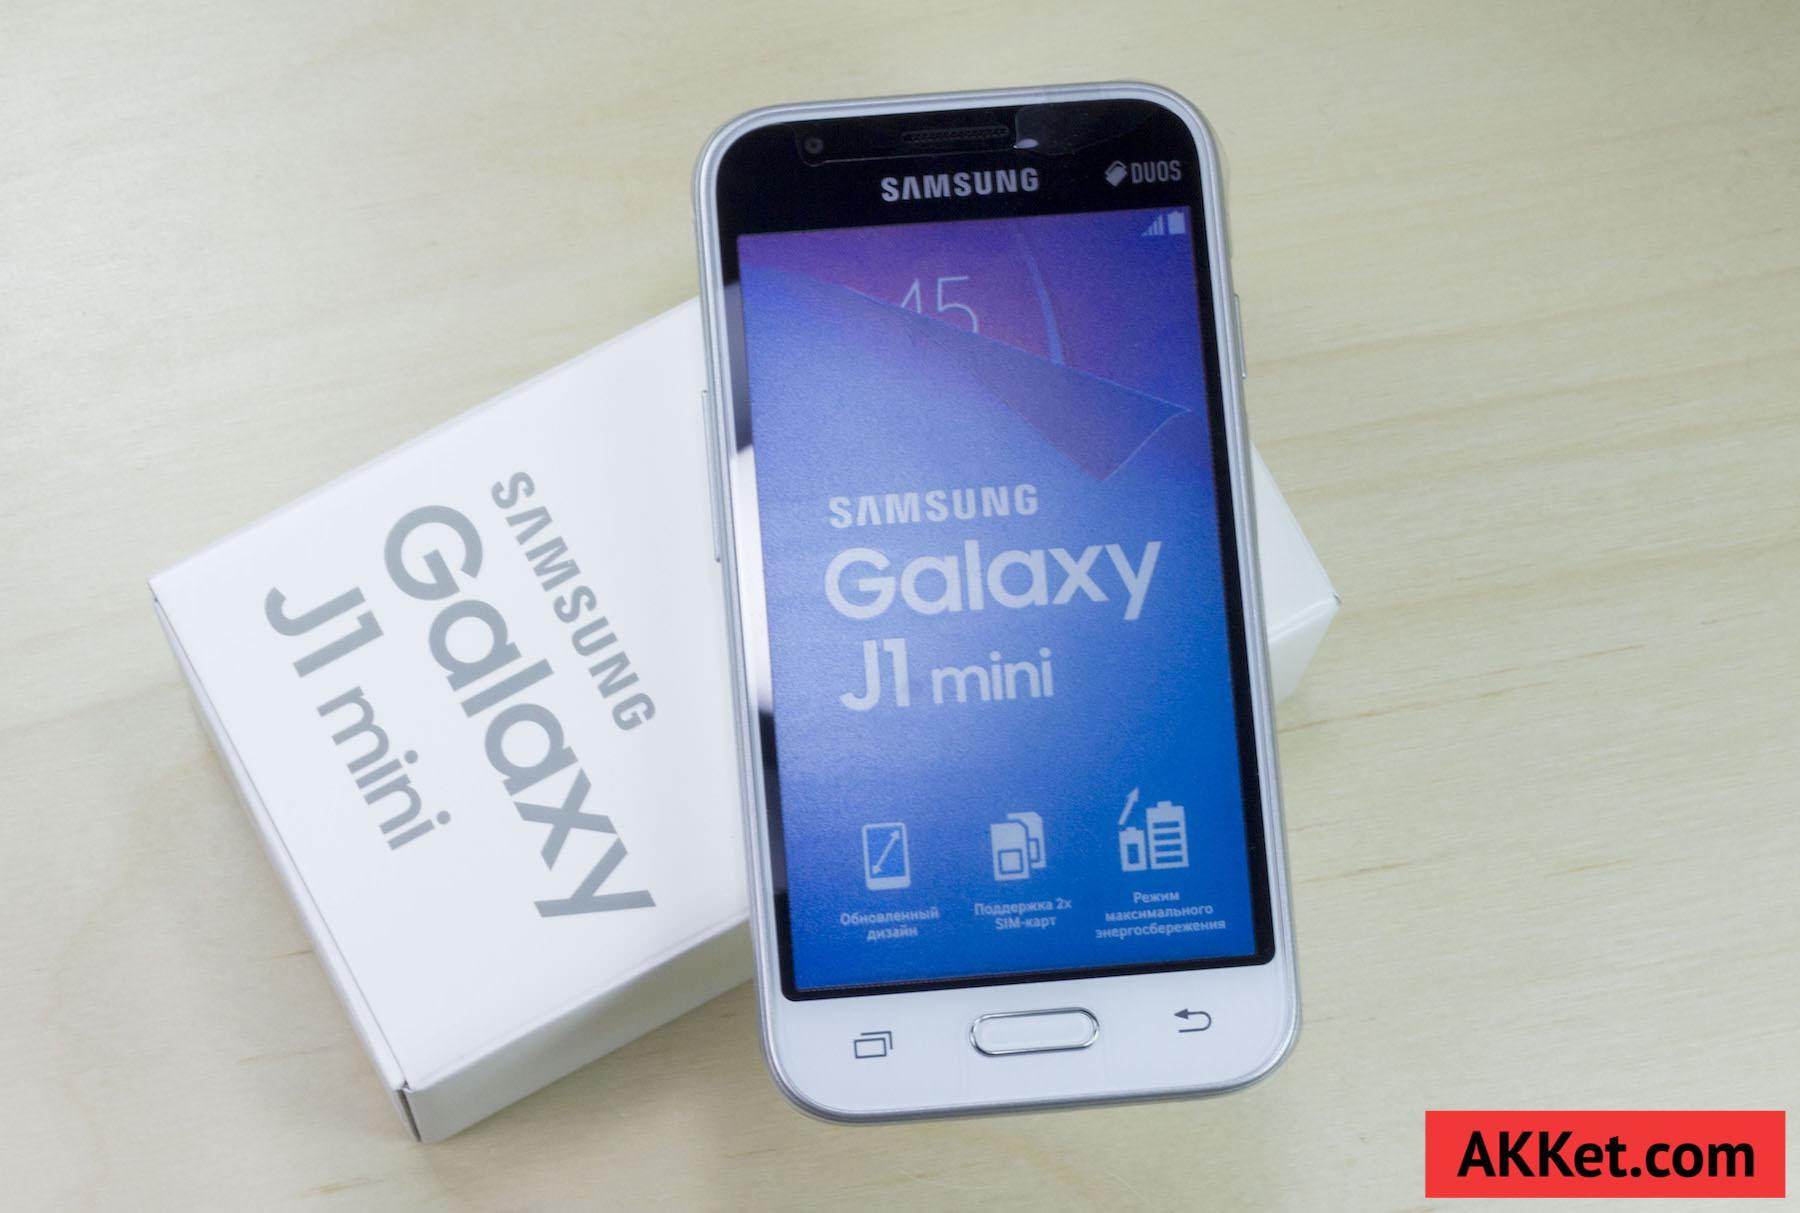 Samsung Galaxy J1 mini Duos Android 5.1.1 Lollipop Review 12